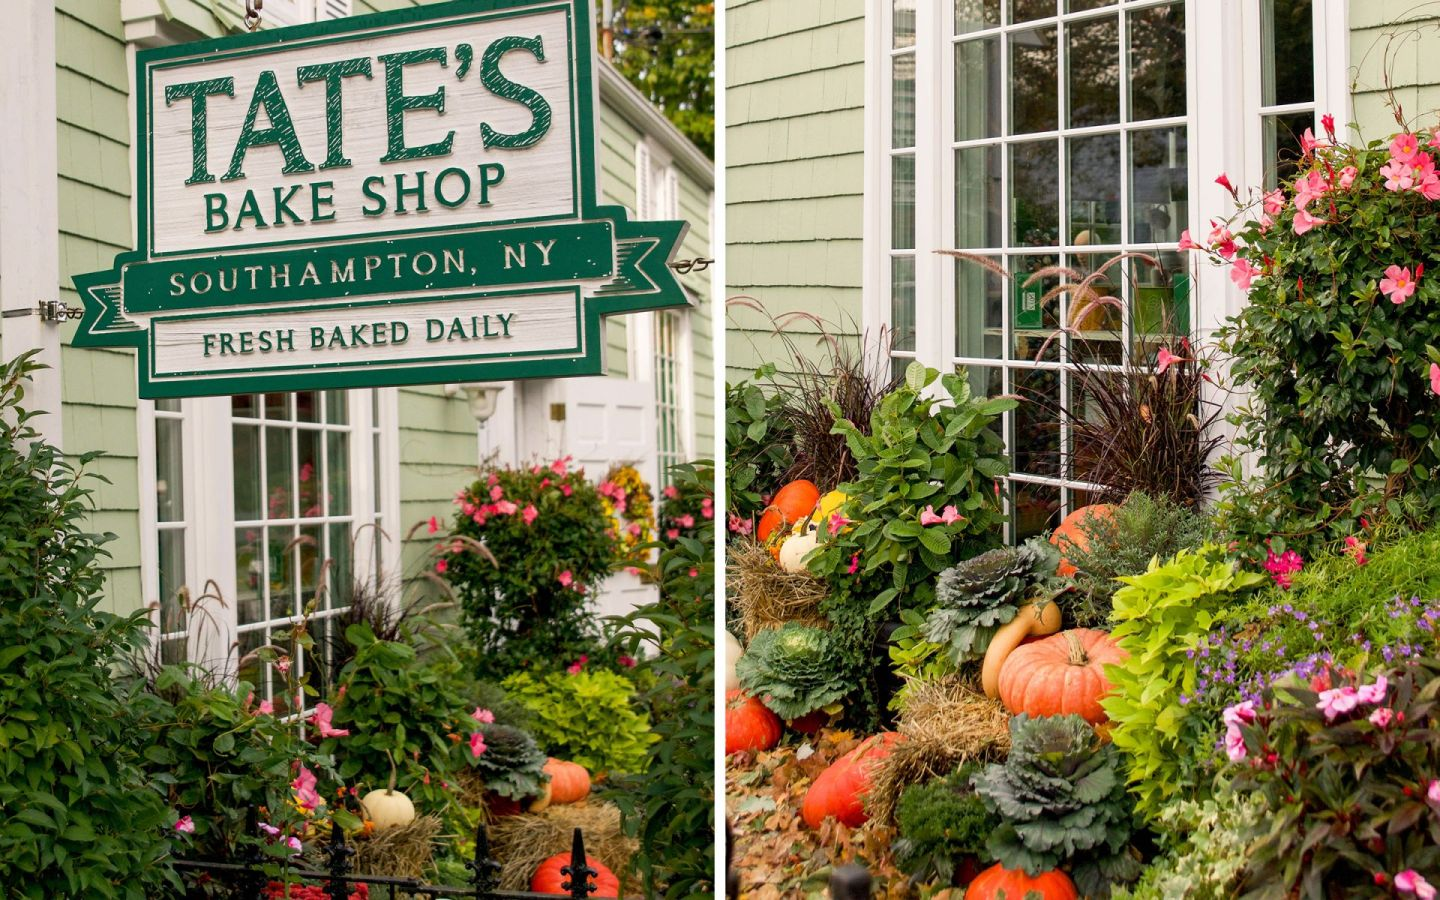 fall in the hamptons - tate's bake shop southampton